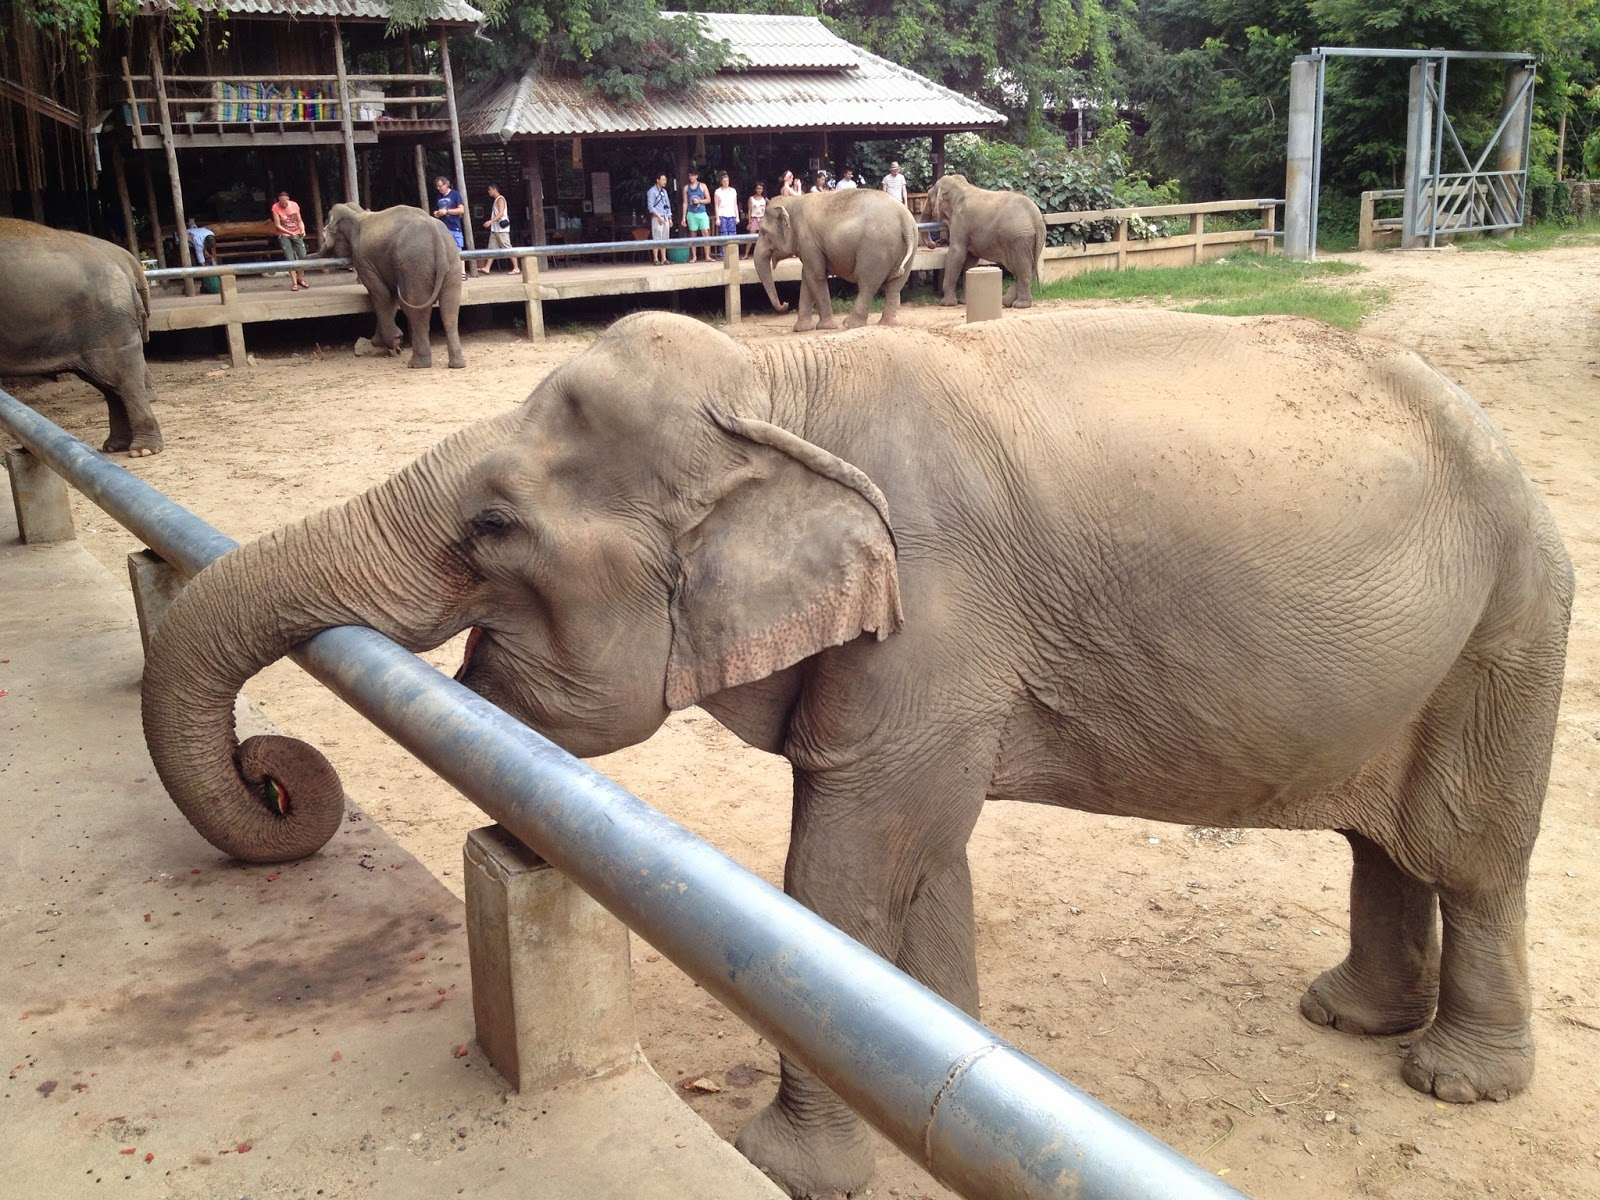 Chiang Mai - Elephants gathering at lunch time